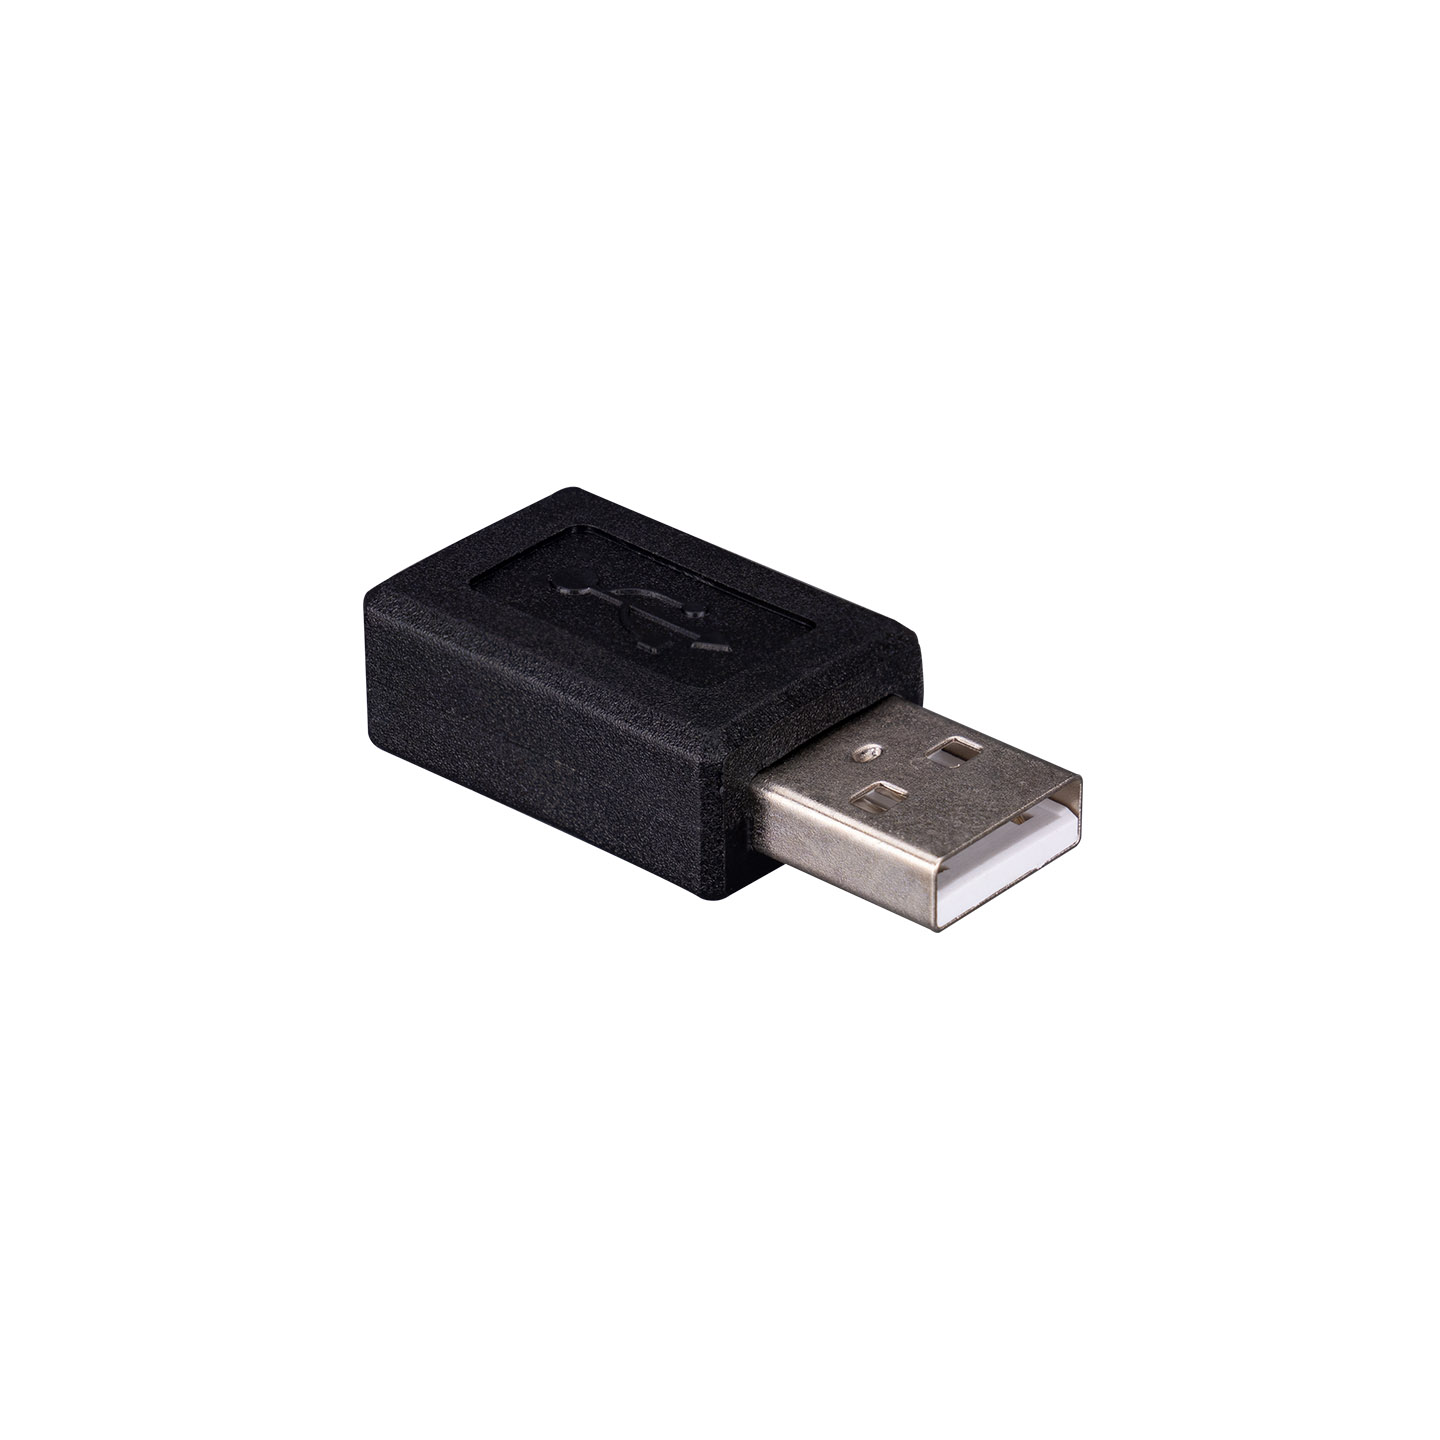 S-link Micro 5pin Usb F to Usb AM Çevirici Adaptör